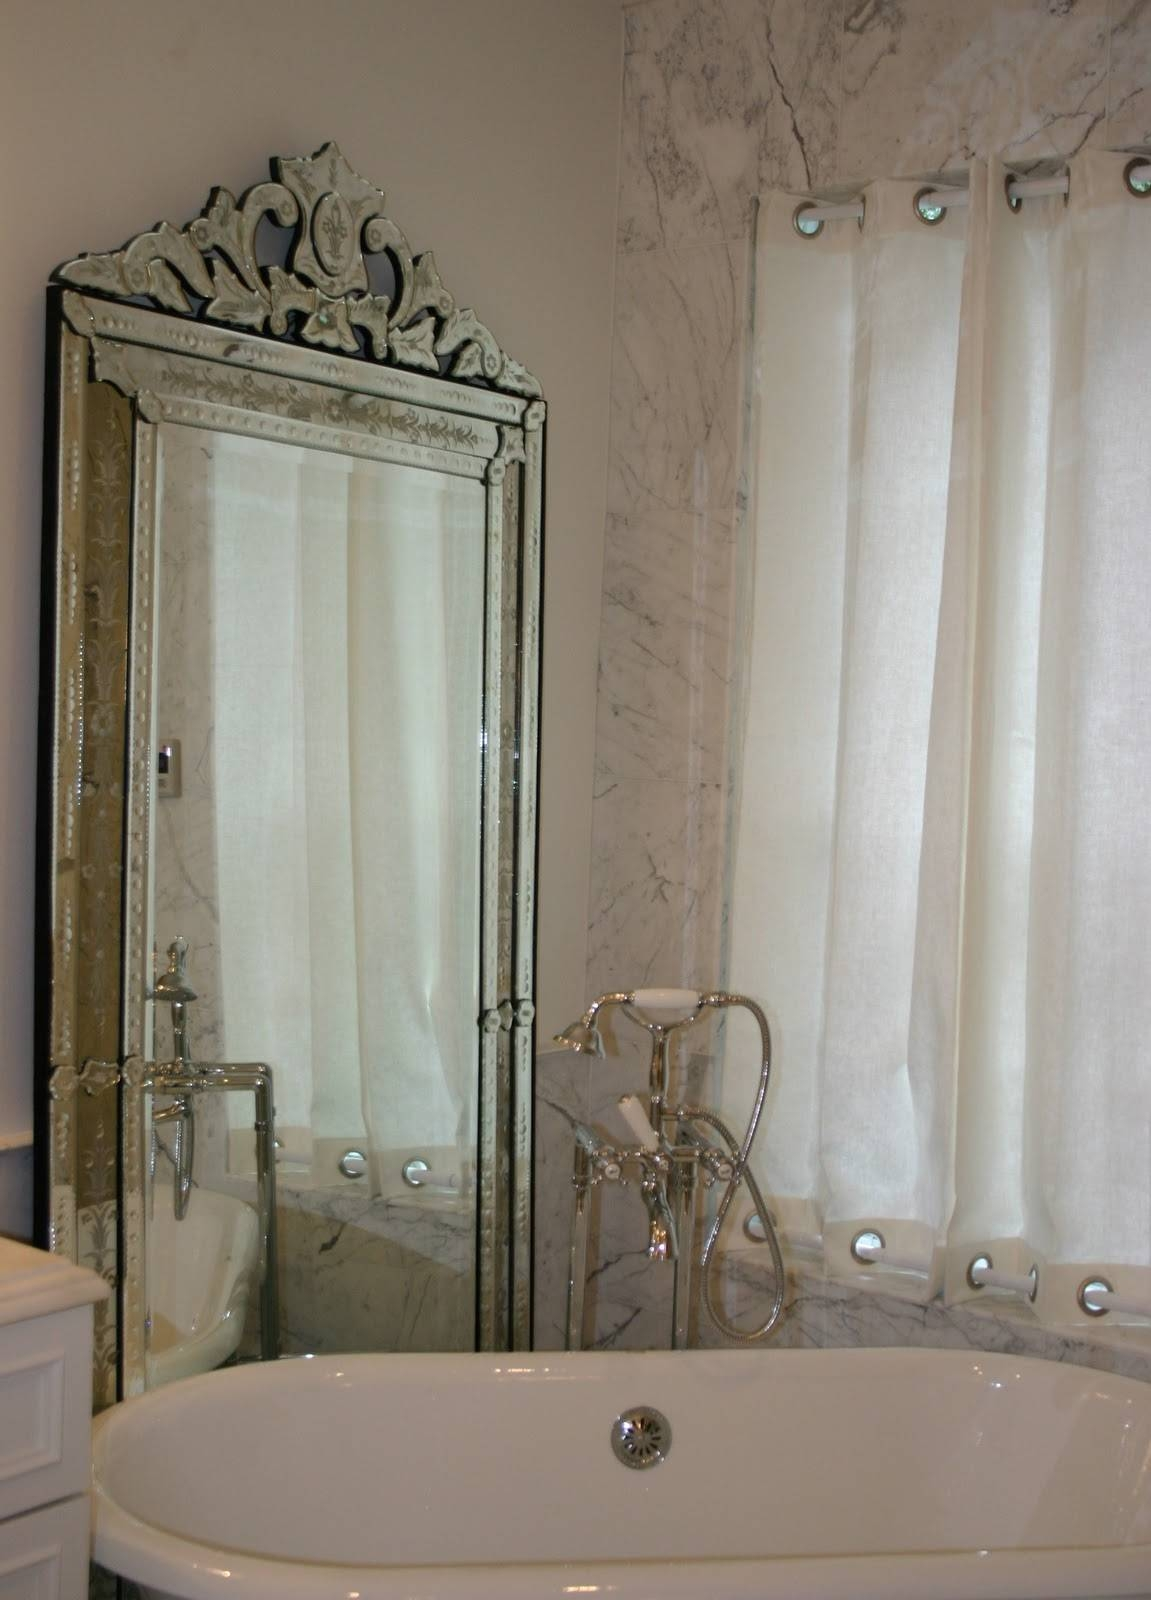 Decoration Ideas : Heavenly Decorations Of Venetian Bathroom Within Silver Free Standing Mirrors (View 8 of 25)